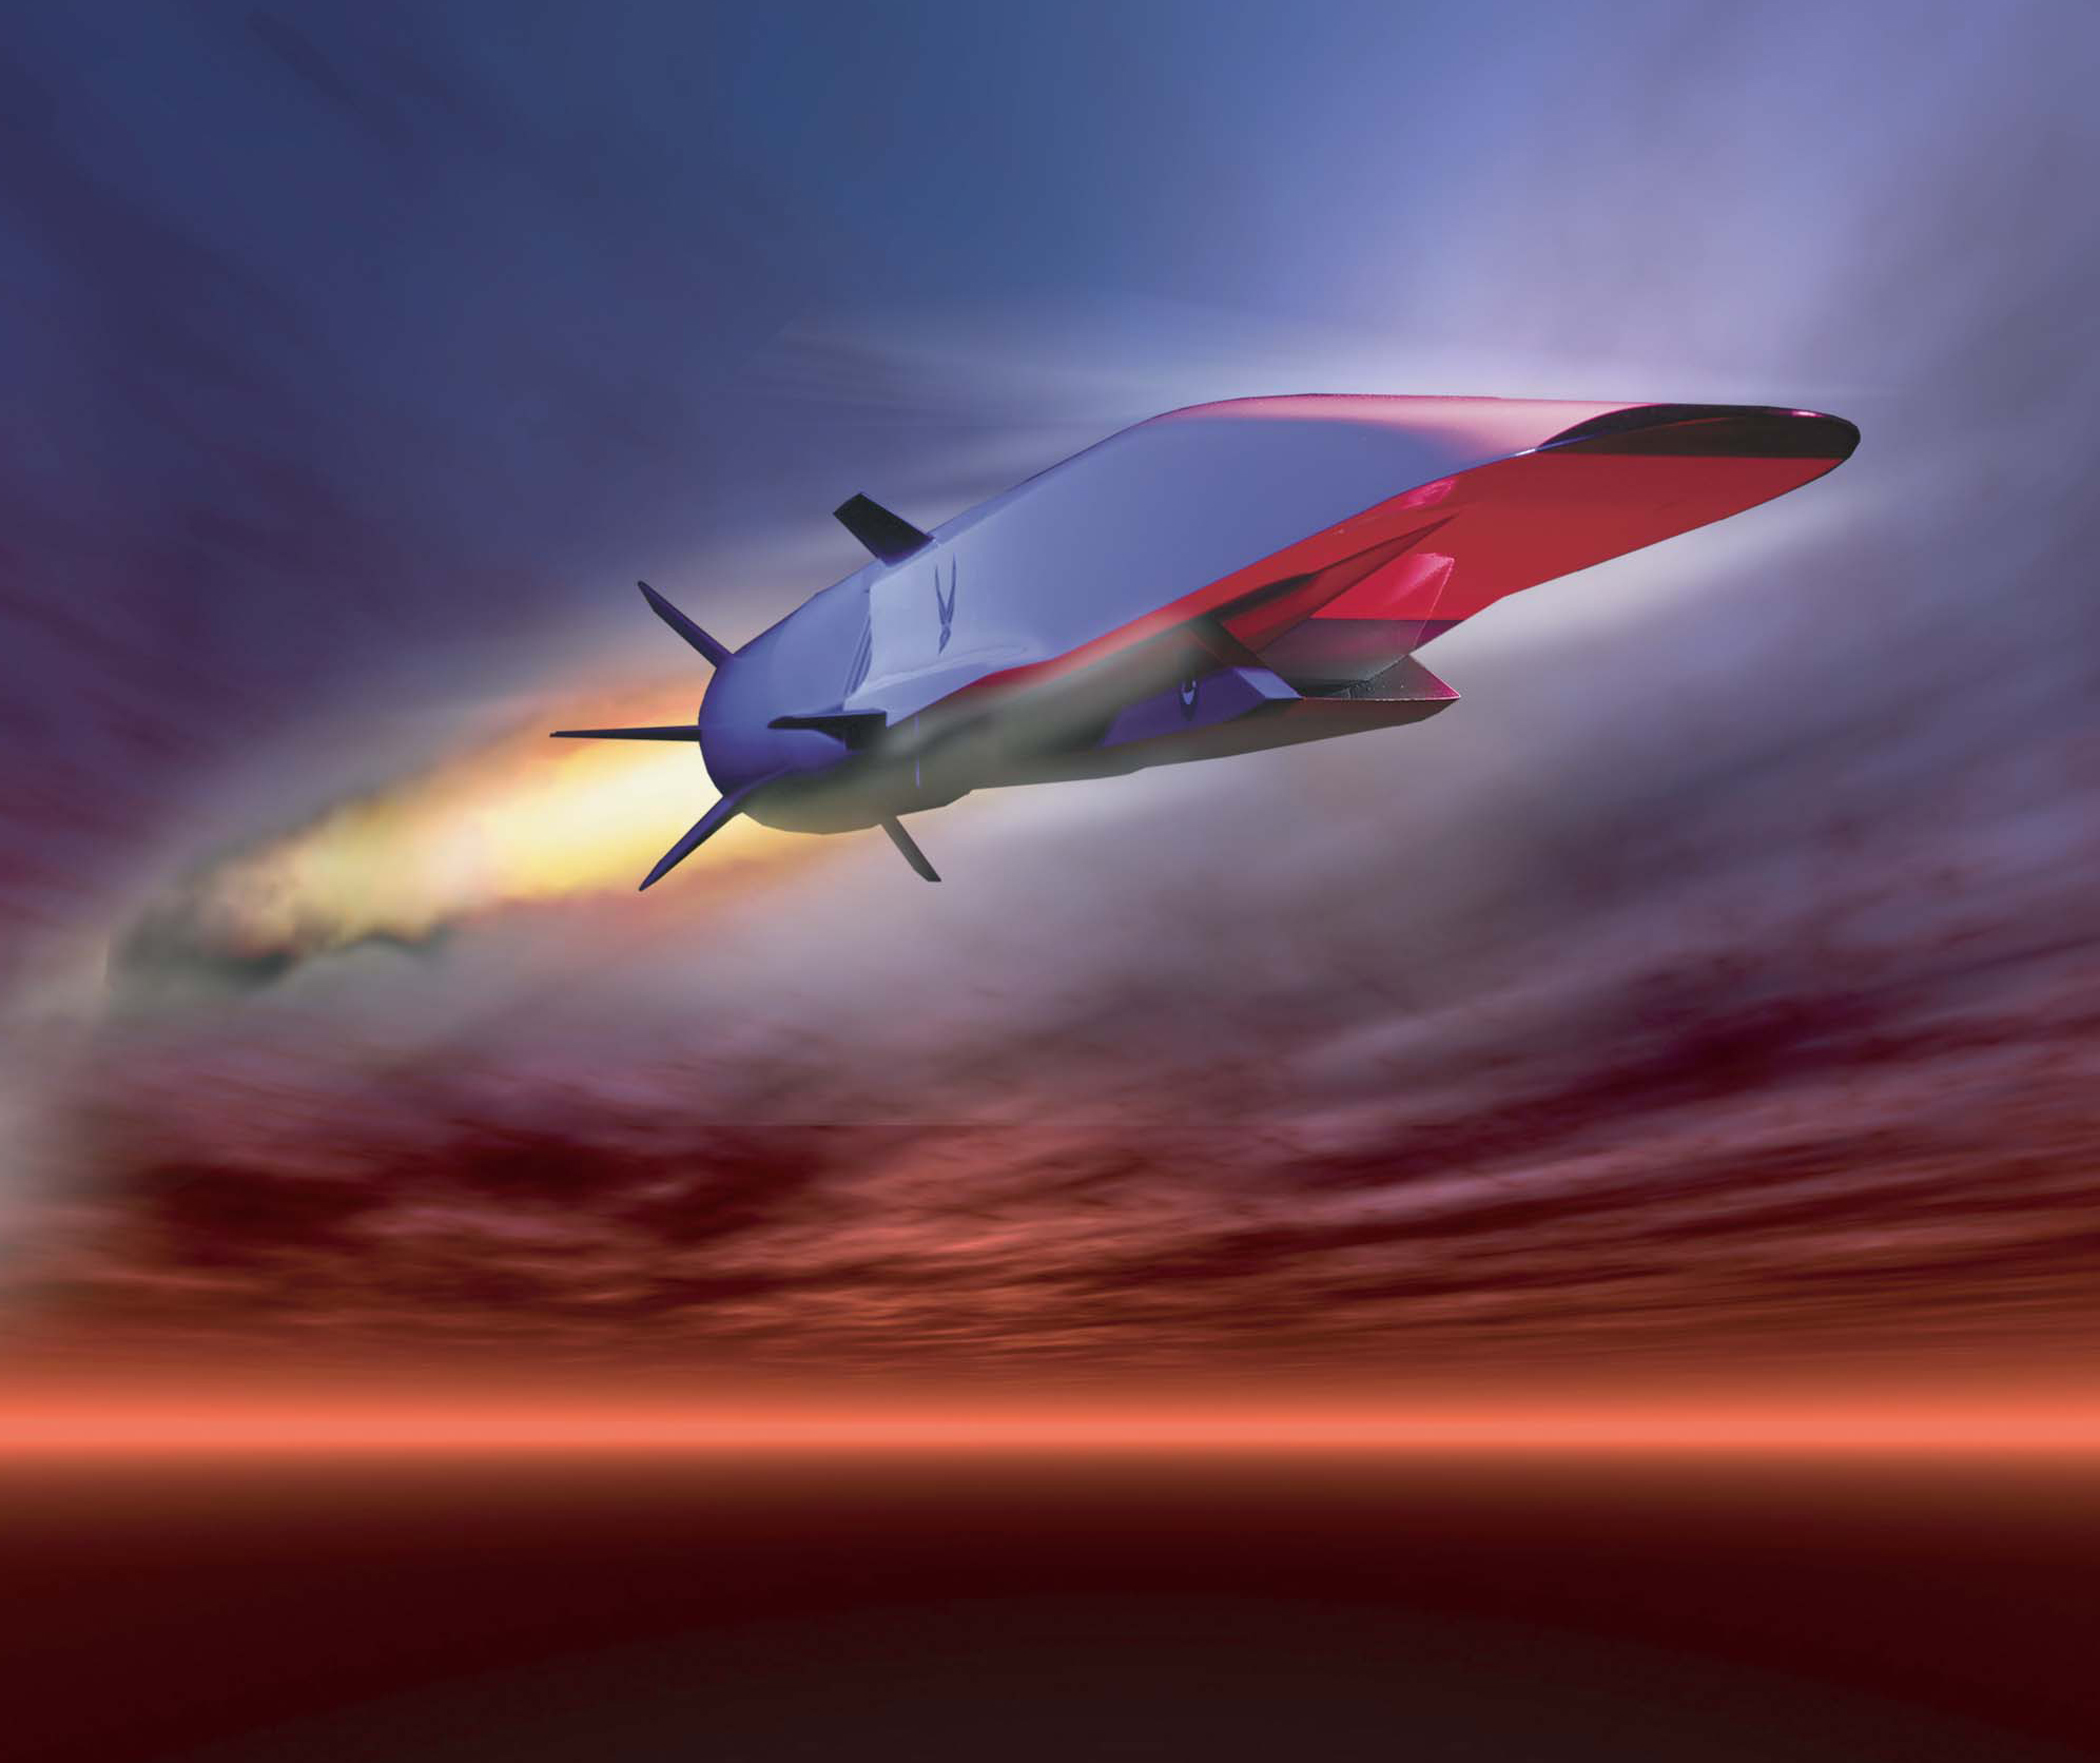 The X-51A Waverider is set to demonstrate hypersonic flight. Powered by a Pratt & Whitney Rocketdyne SJY61 scramjet engine, it is designed to ride on its own shockwave and accelerate to about Mach 6. (U.S. Air Force graphic)